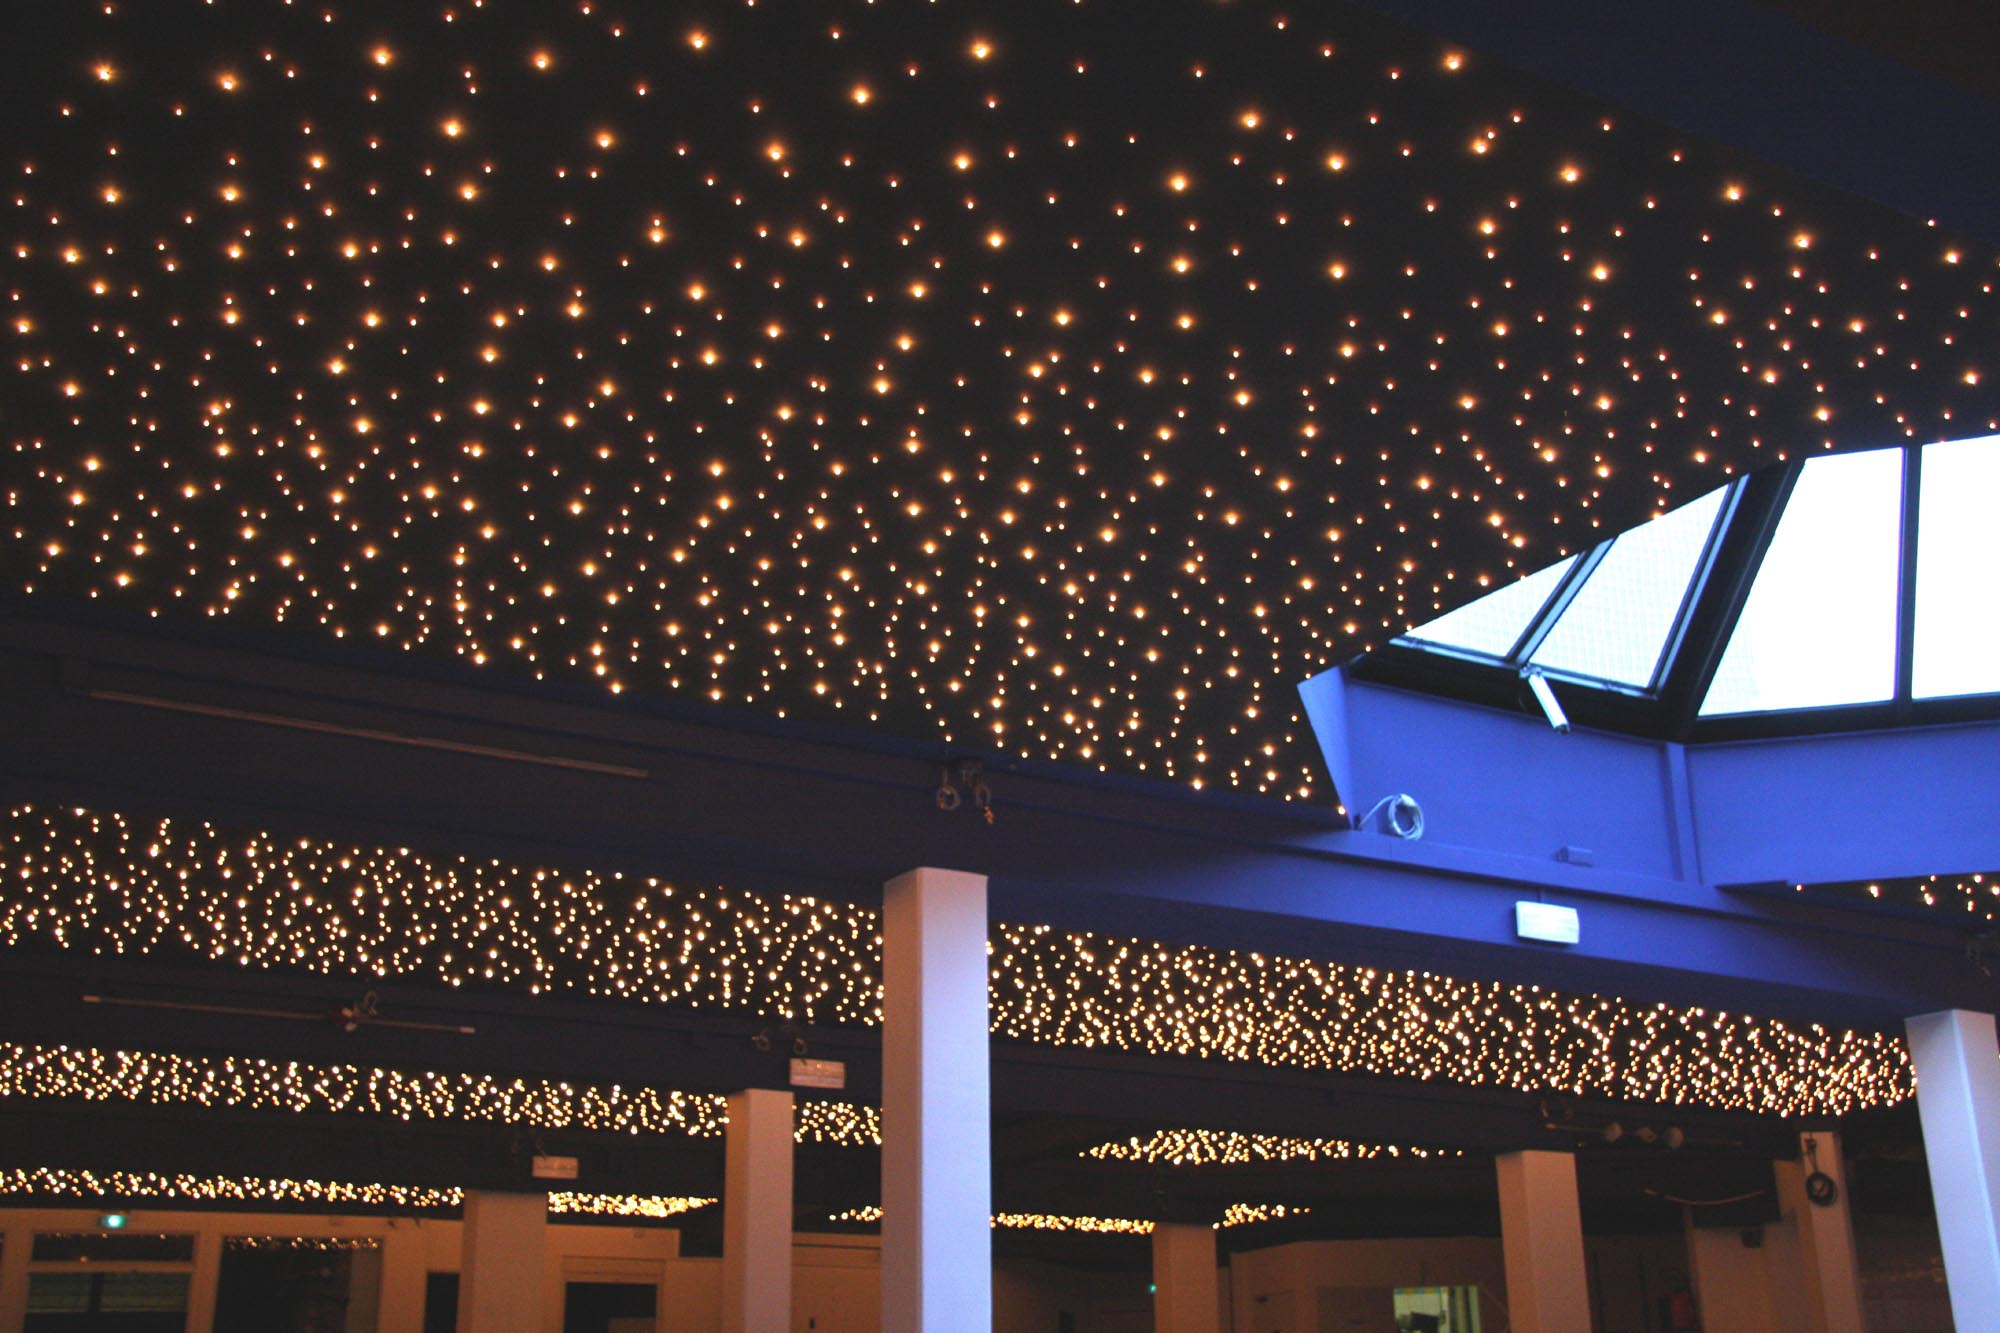 Starlit ceiling, 15 000 stars-LEDs, 400m2, Seven Spirits, Paris / For the owner of a Parisian ballroom, Semeur d'Étoiles designed and installed the largest European starlit ceiling. Despite the room's network of beams, we succeeded in creating a ceiling that preserved the room's high ceilings and added acoustic attenuation. We used a combination of different LED intensities to create the feeling of depth. The starlit ceiling has become the main attraction of the ballroom, allowing the owner a rapid return on his investment.